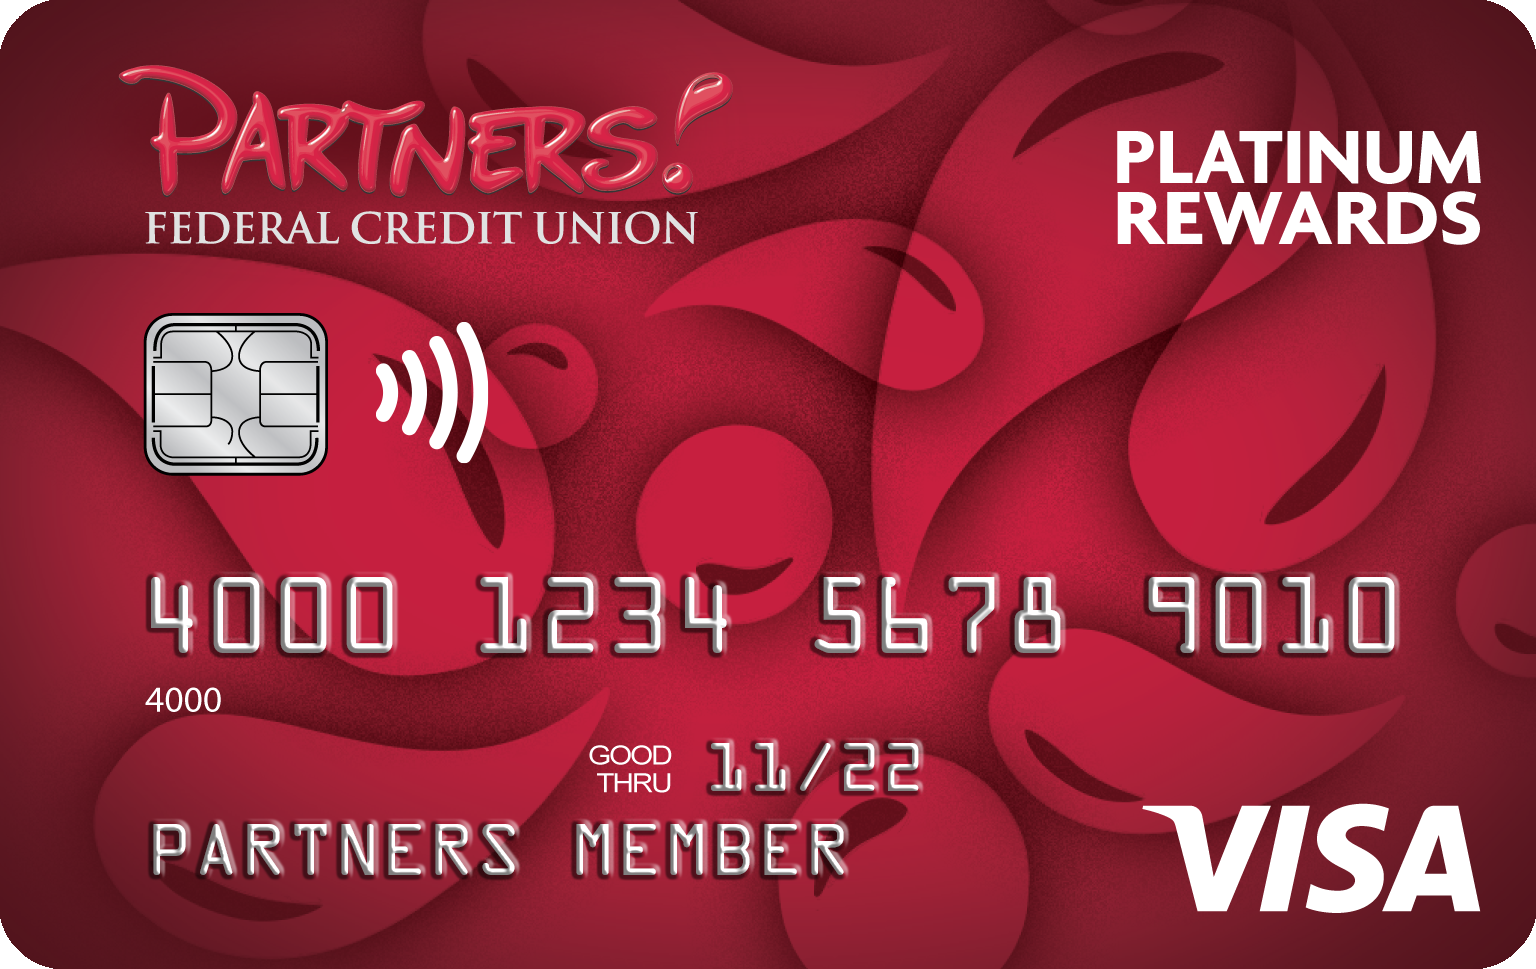 Partners-Visa-PlatinumRewards-Card-withImprint